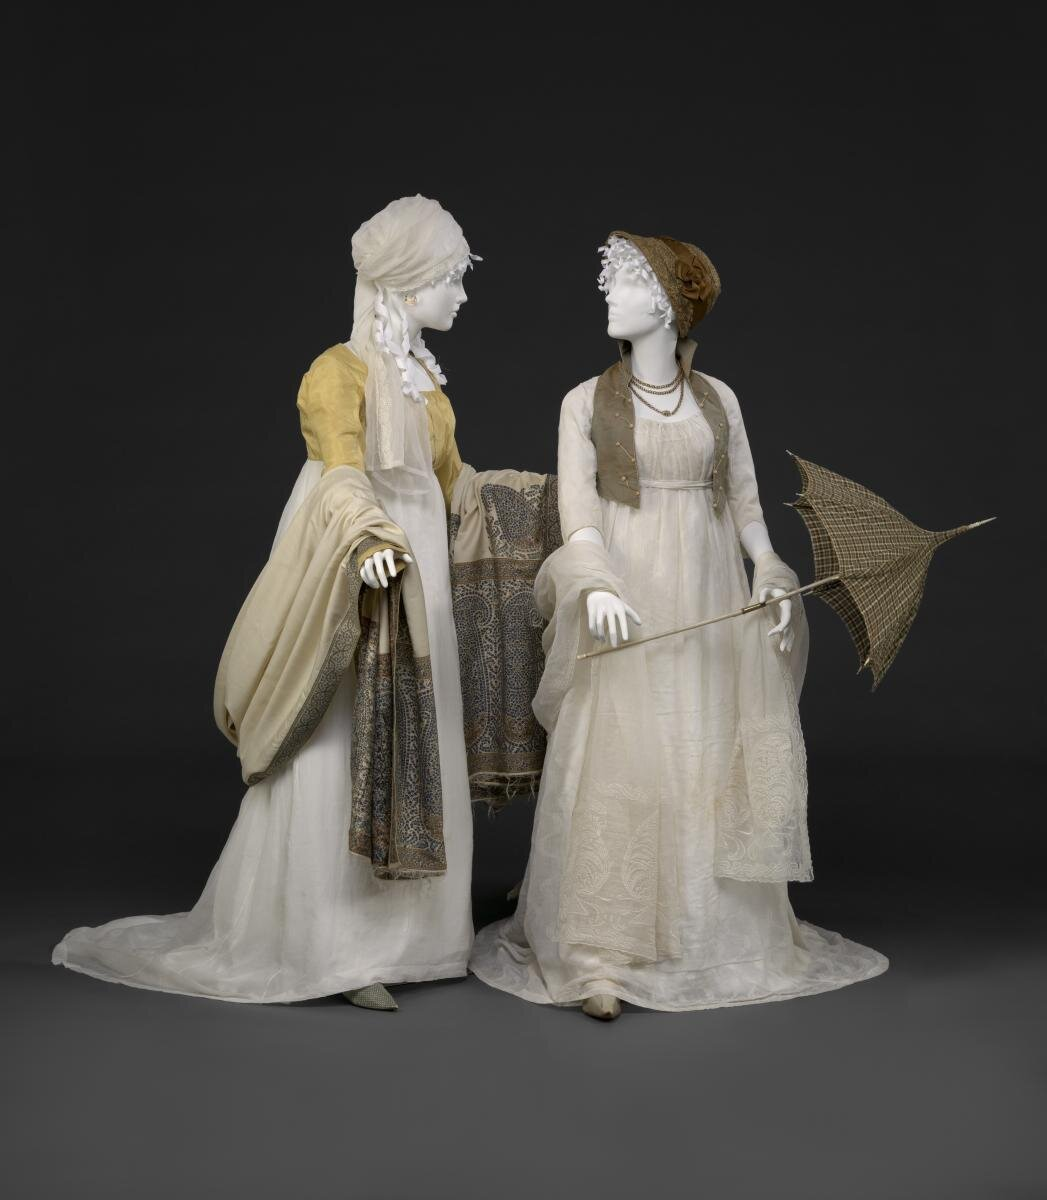 """Photo courtesy of  www.dar.org , from the DAR Museum exhibit, """"An Agreeable Tyrant: Fashion After the American Revolution."""""""